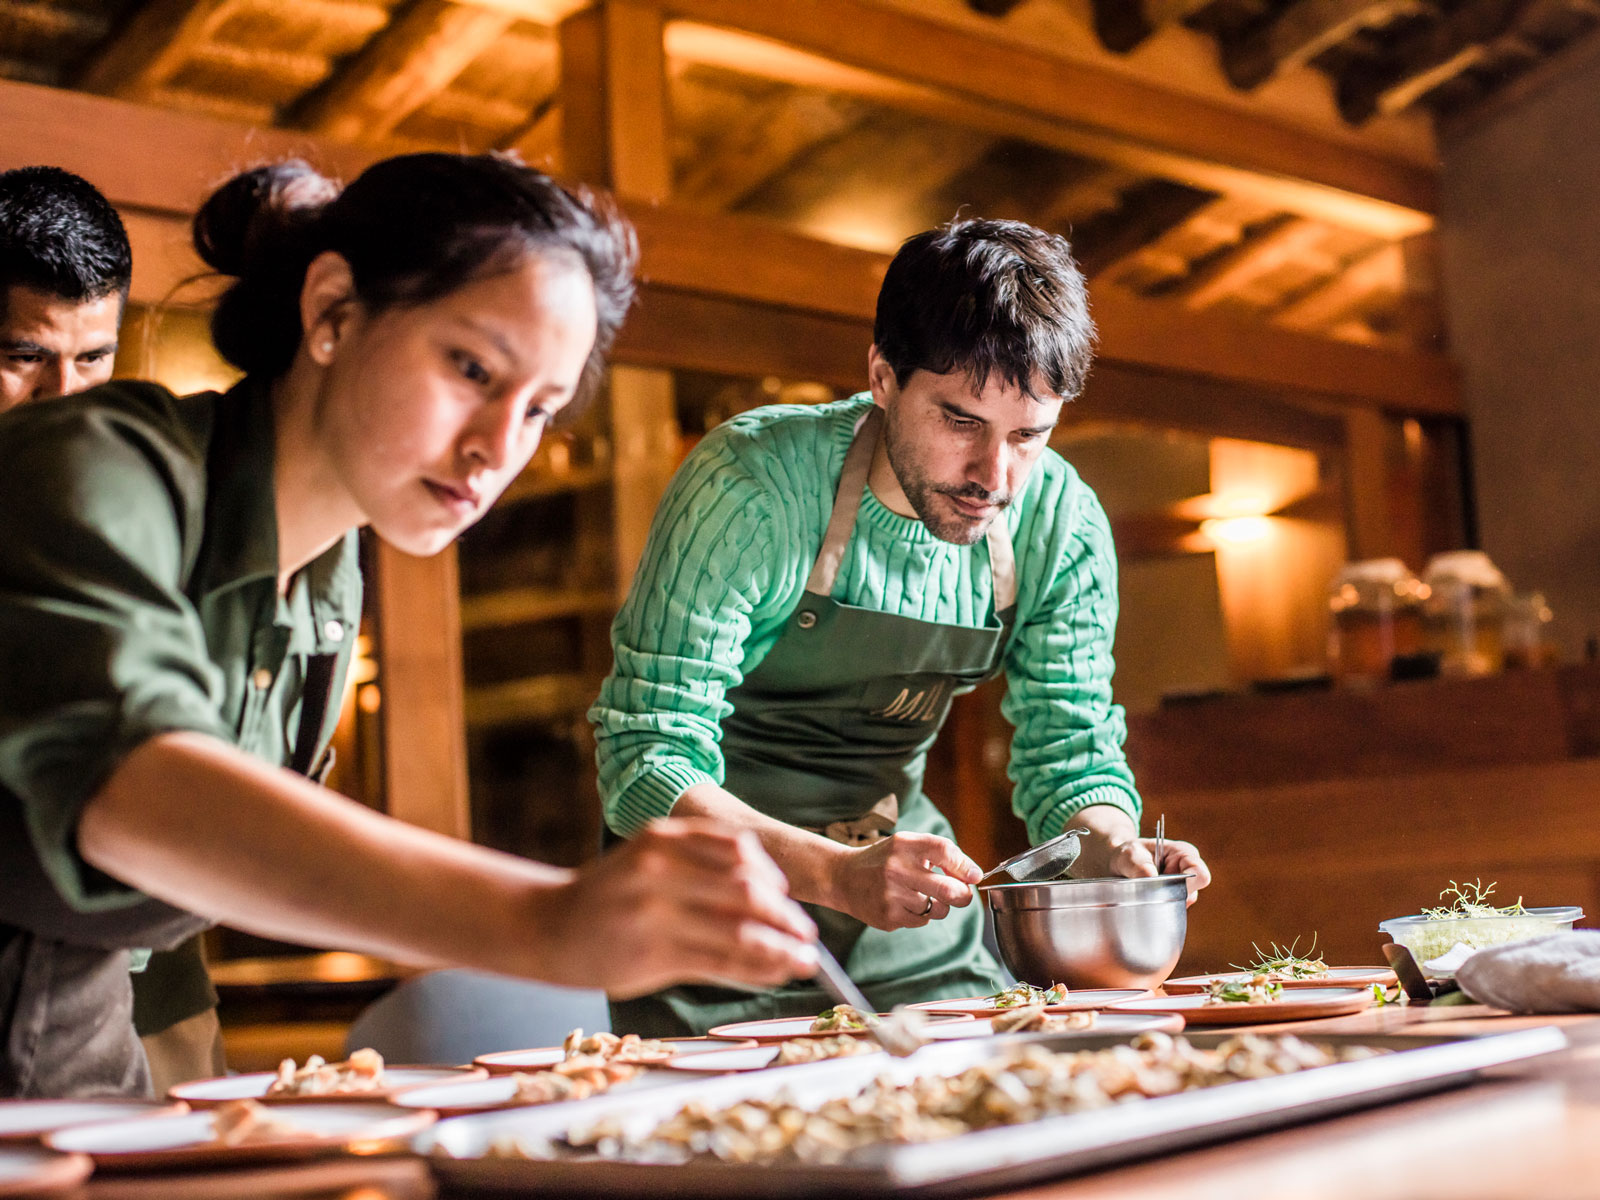 These 10 Chefs Are the 2019 Finalists for the Basque Culinary World Prize